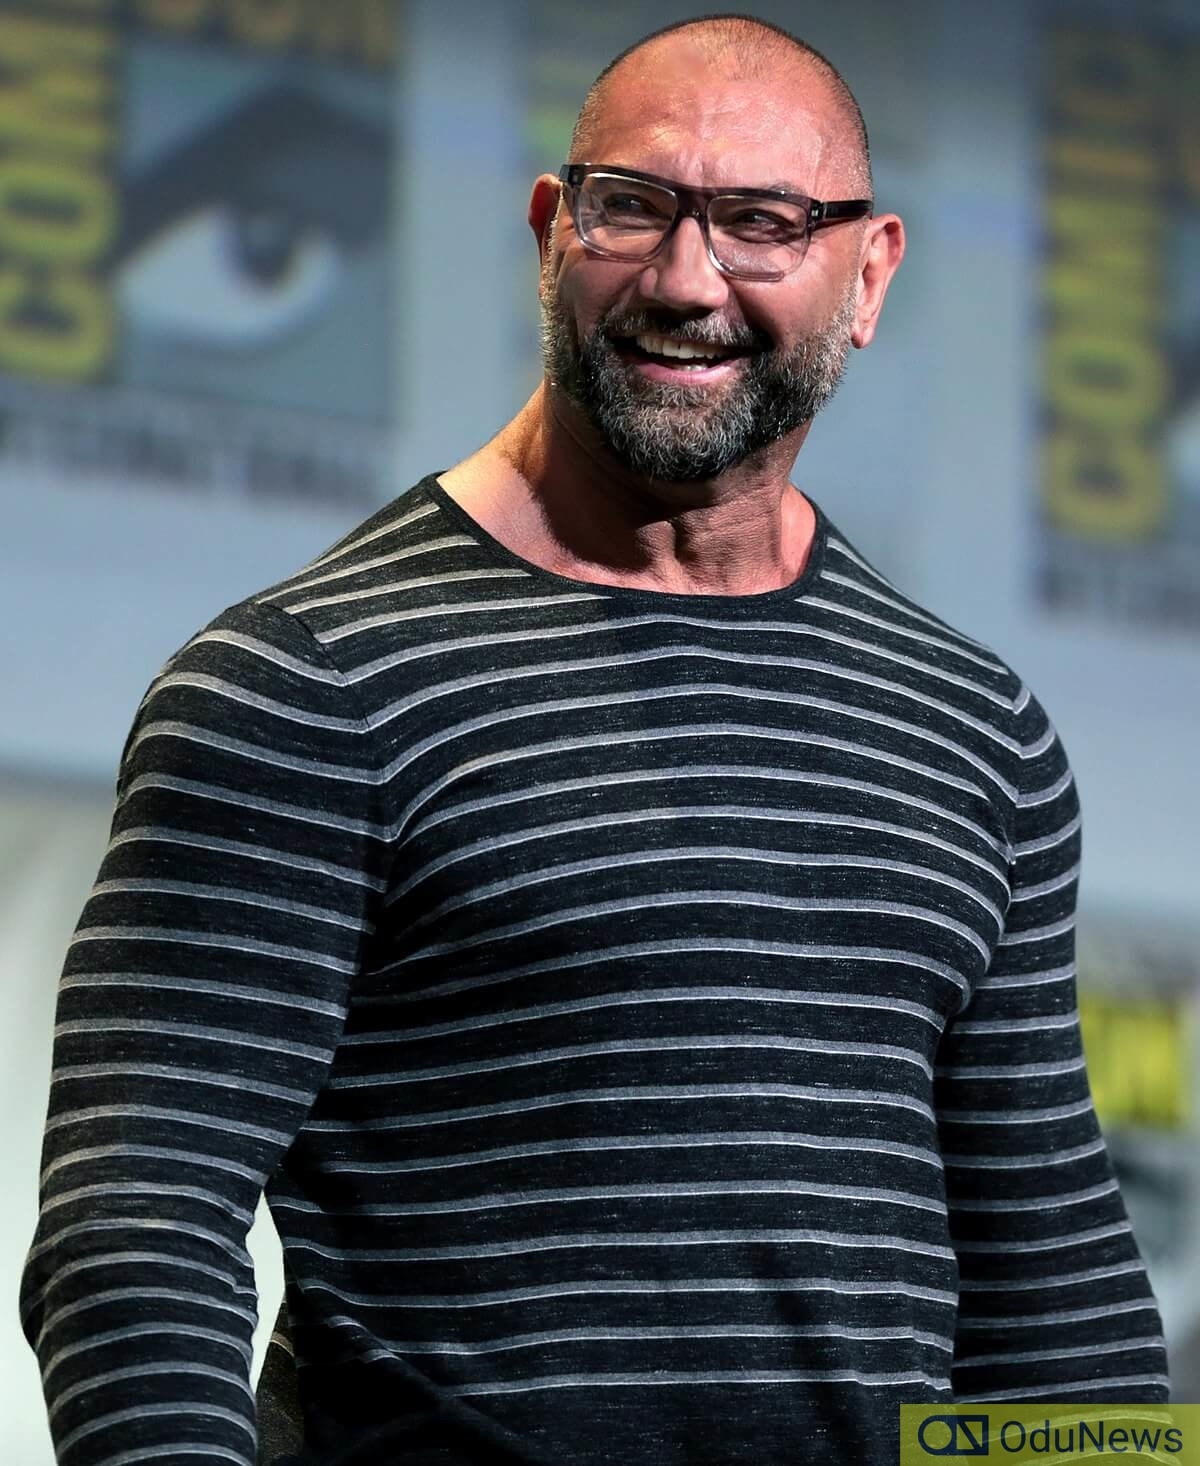 Dave Bautista could play Bane